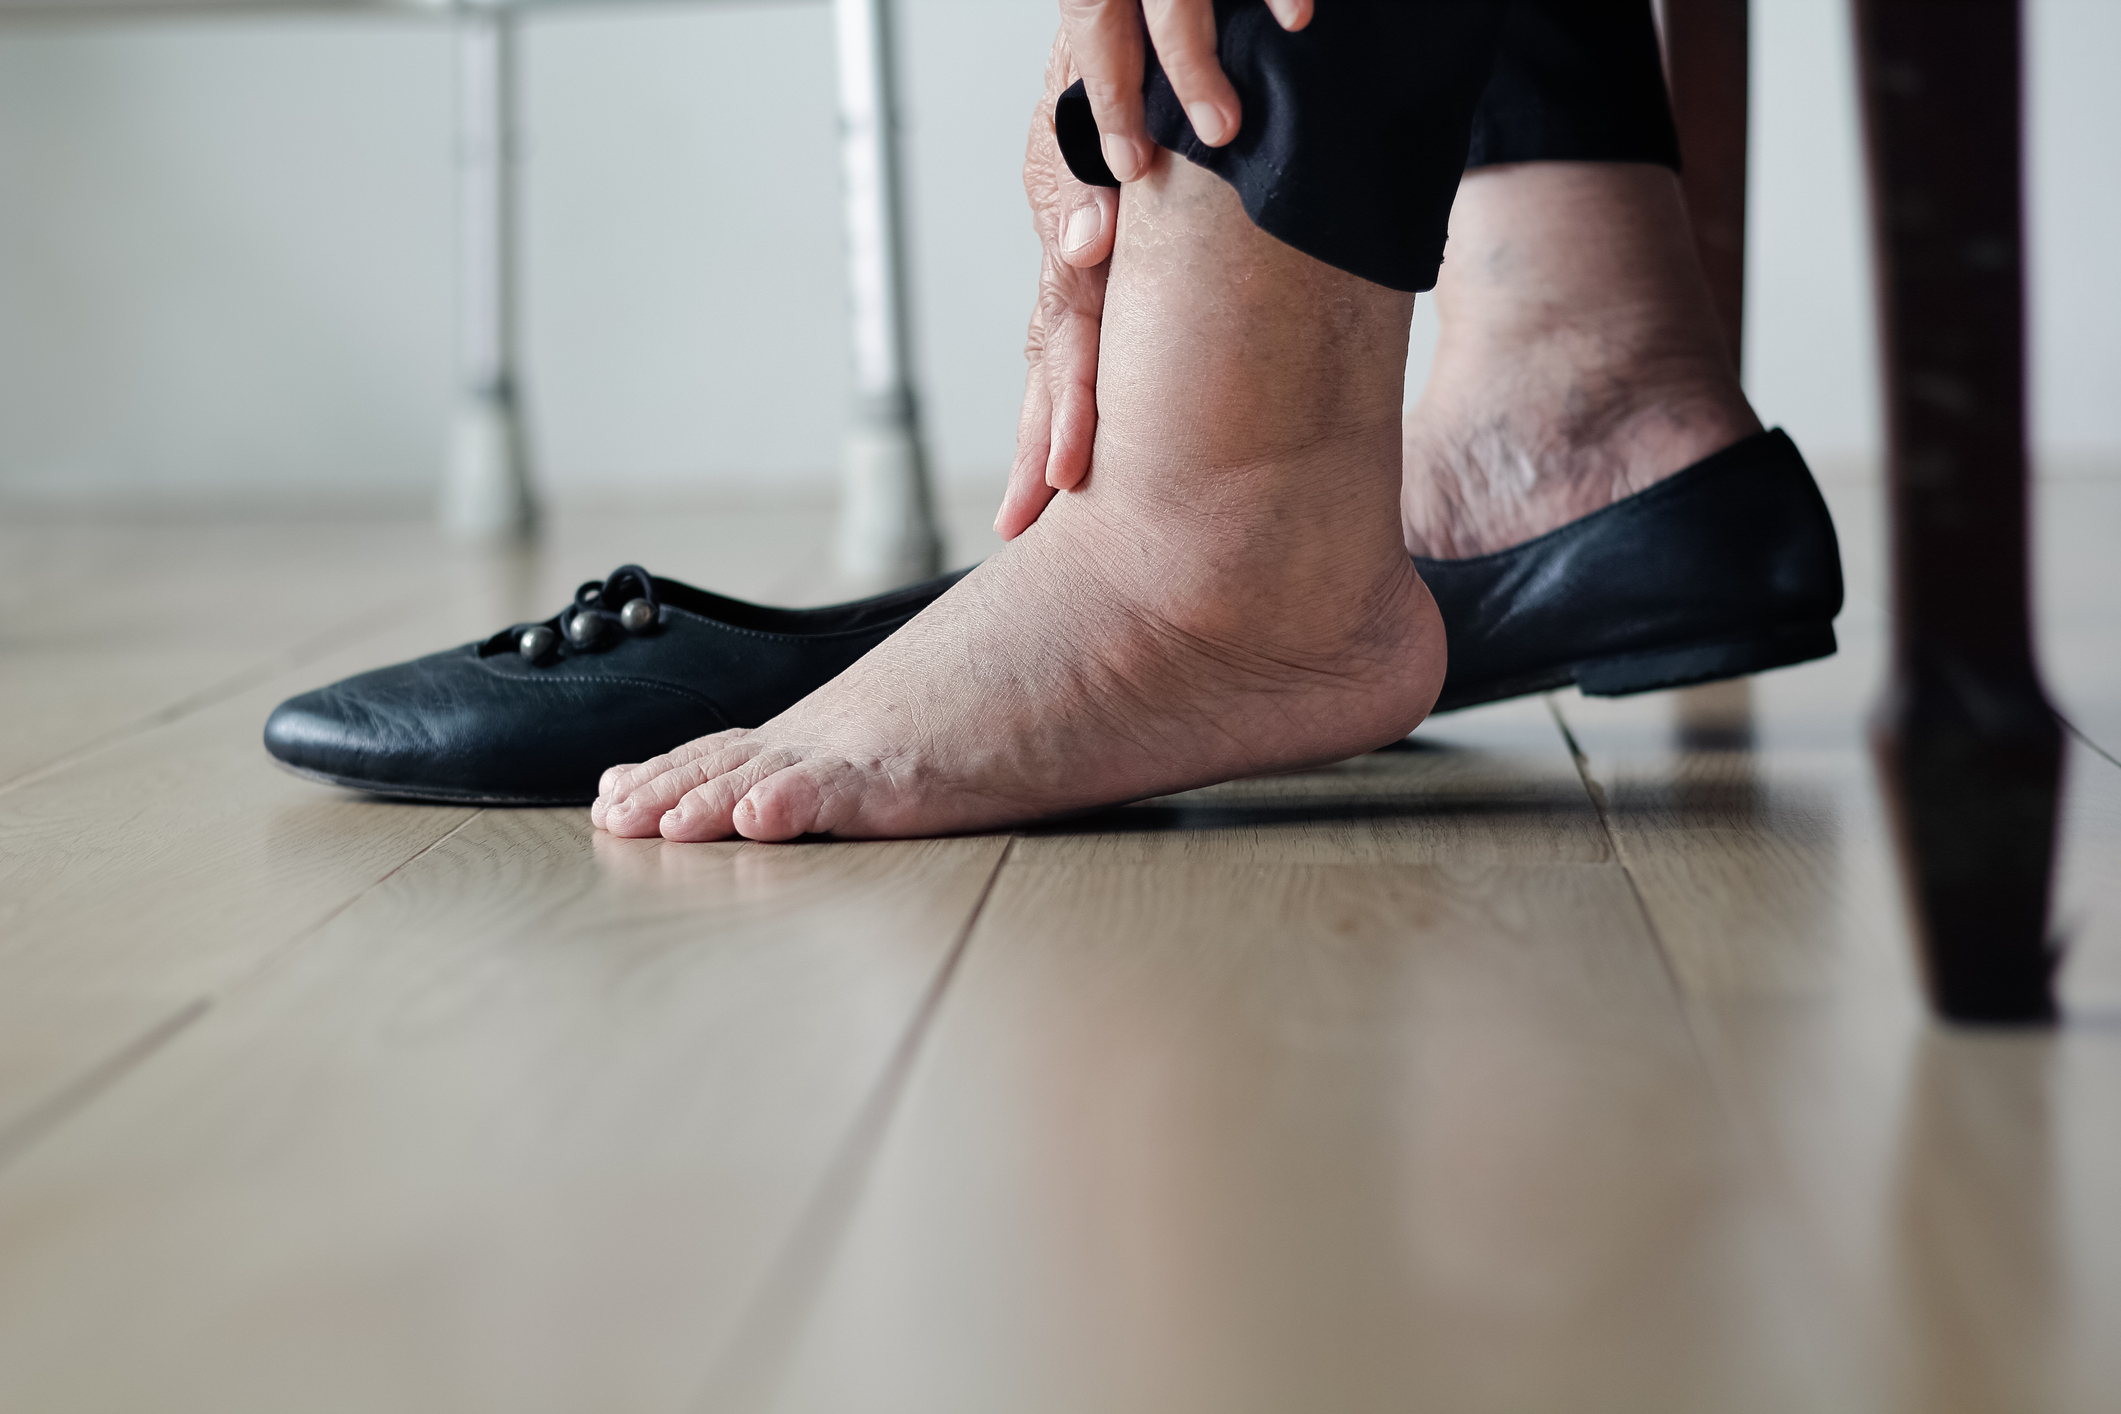 How To Properly Take Care Of Your Feet If You Have Diabetes Podiatry